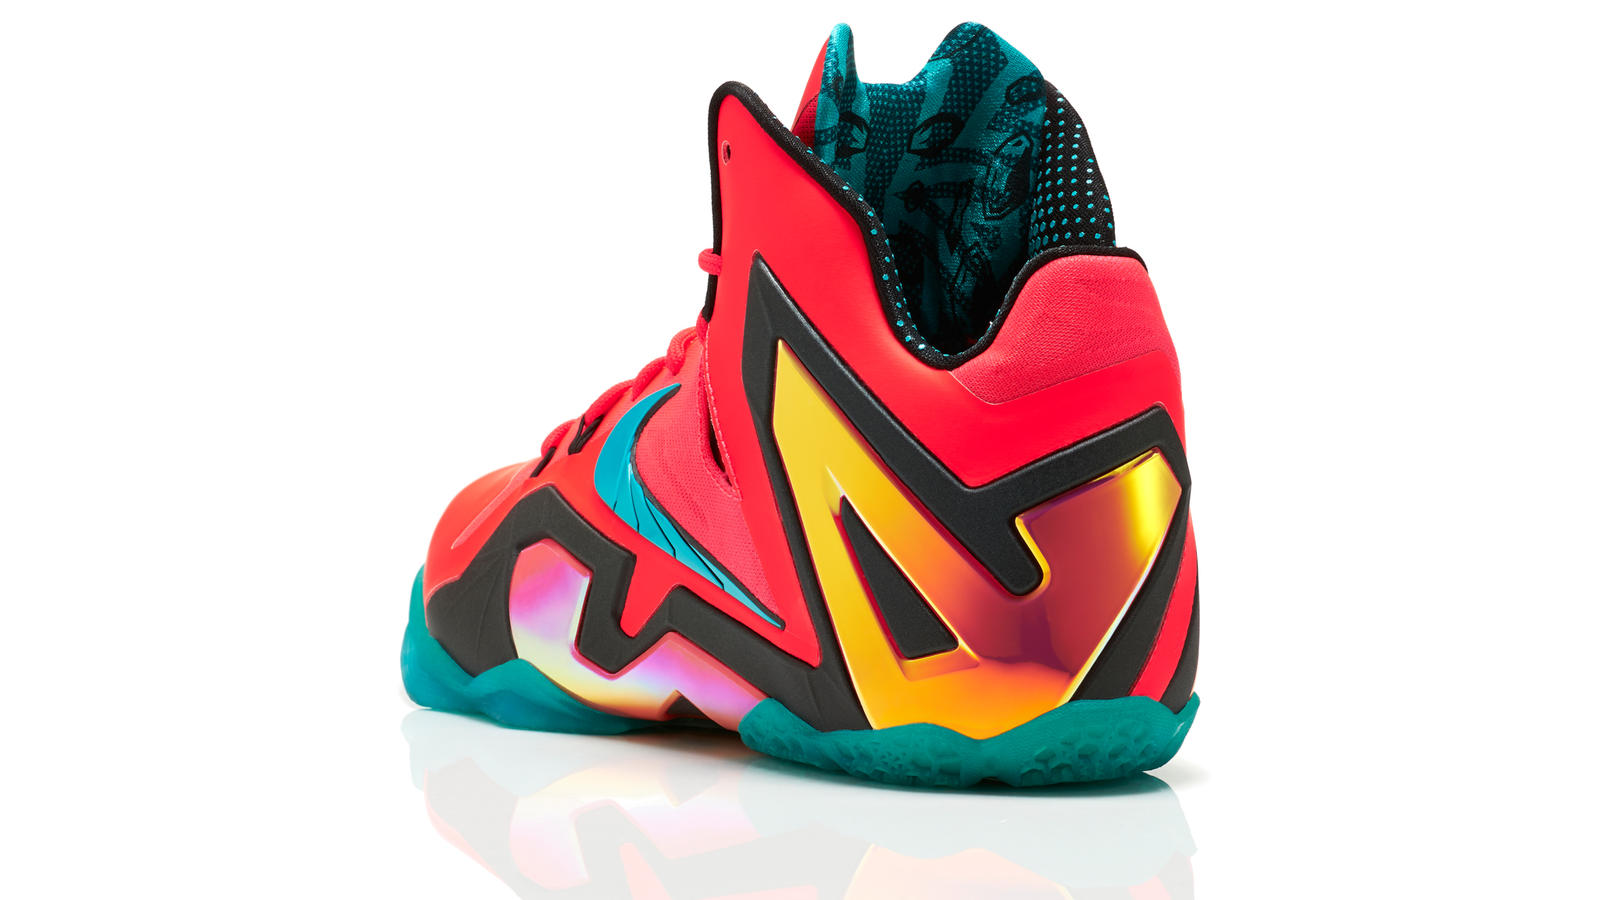 lebron_11_unleashed_600_3qtr_back_low_0213_fb